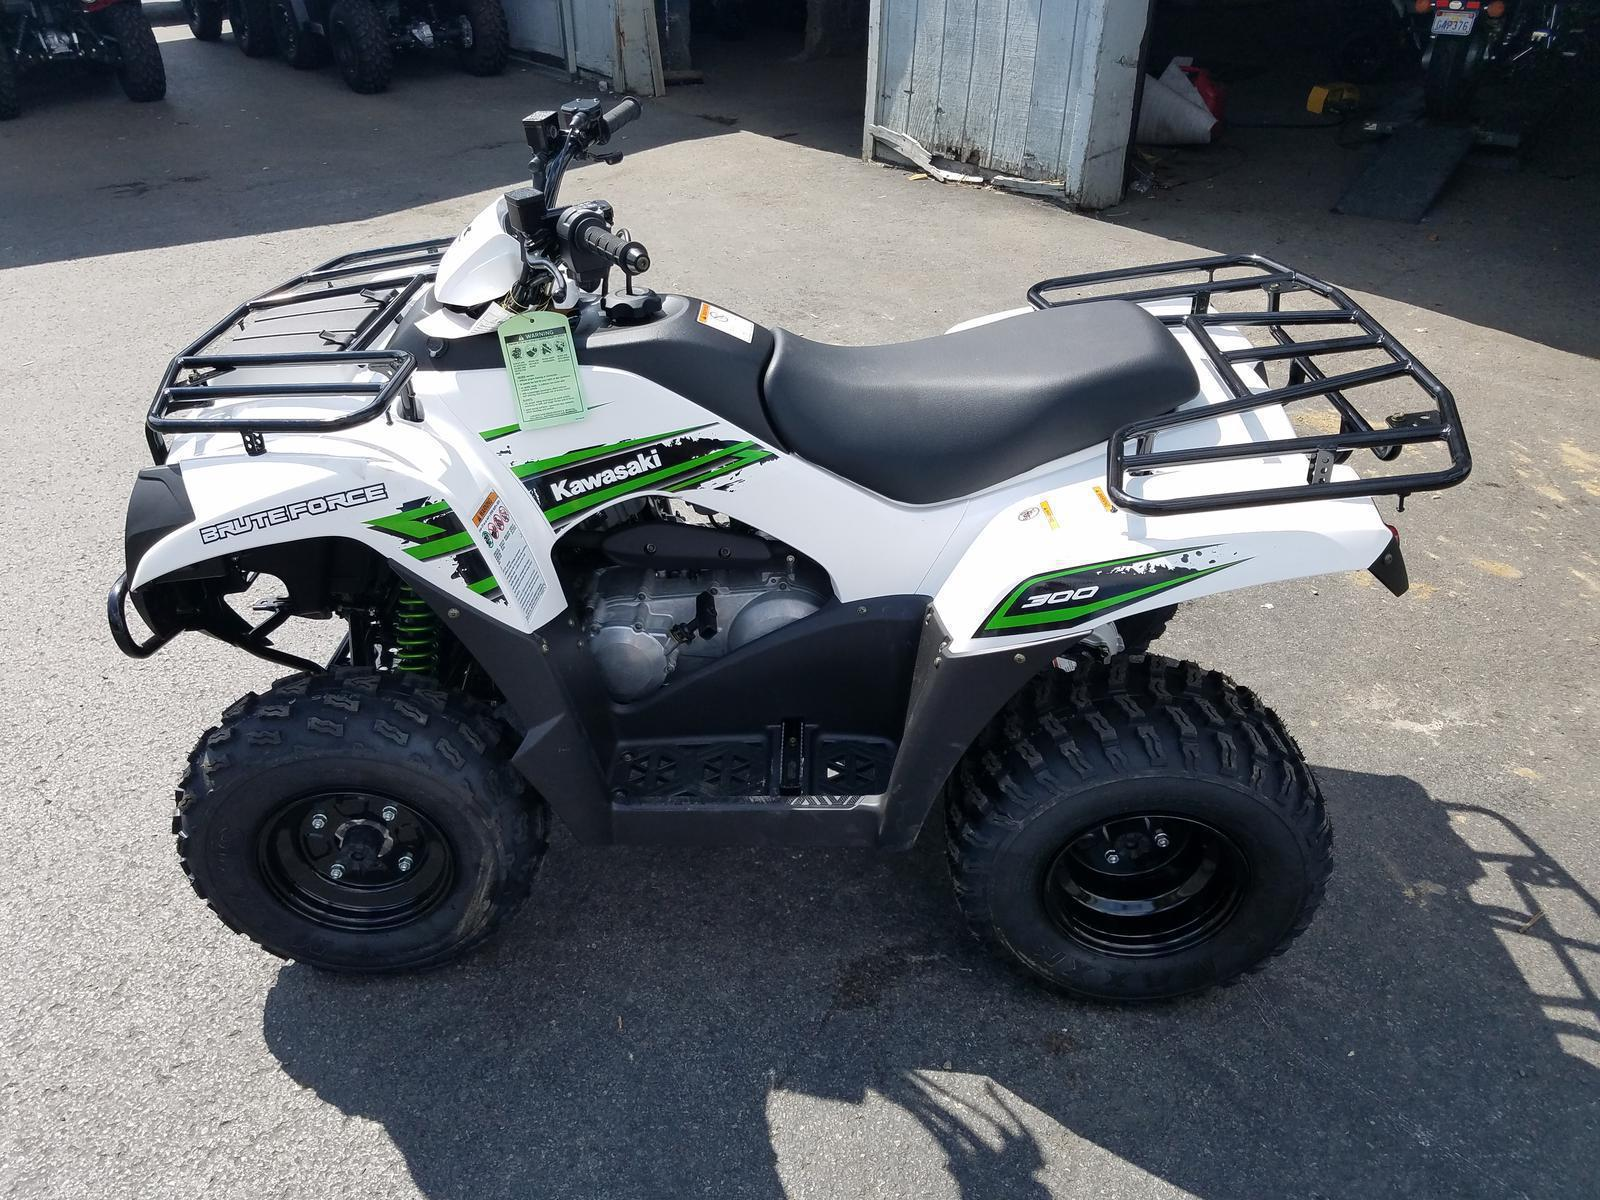 small resolution of 2018 kawasaki brute force 300 for sale in bridgeport wv leeson s import motors 844 533 7667